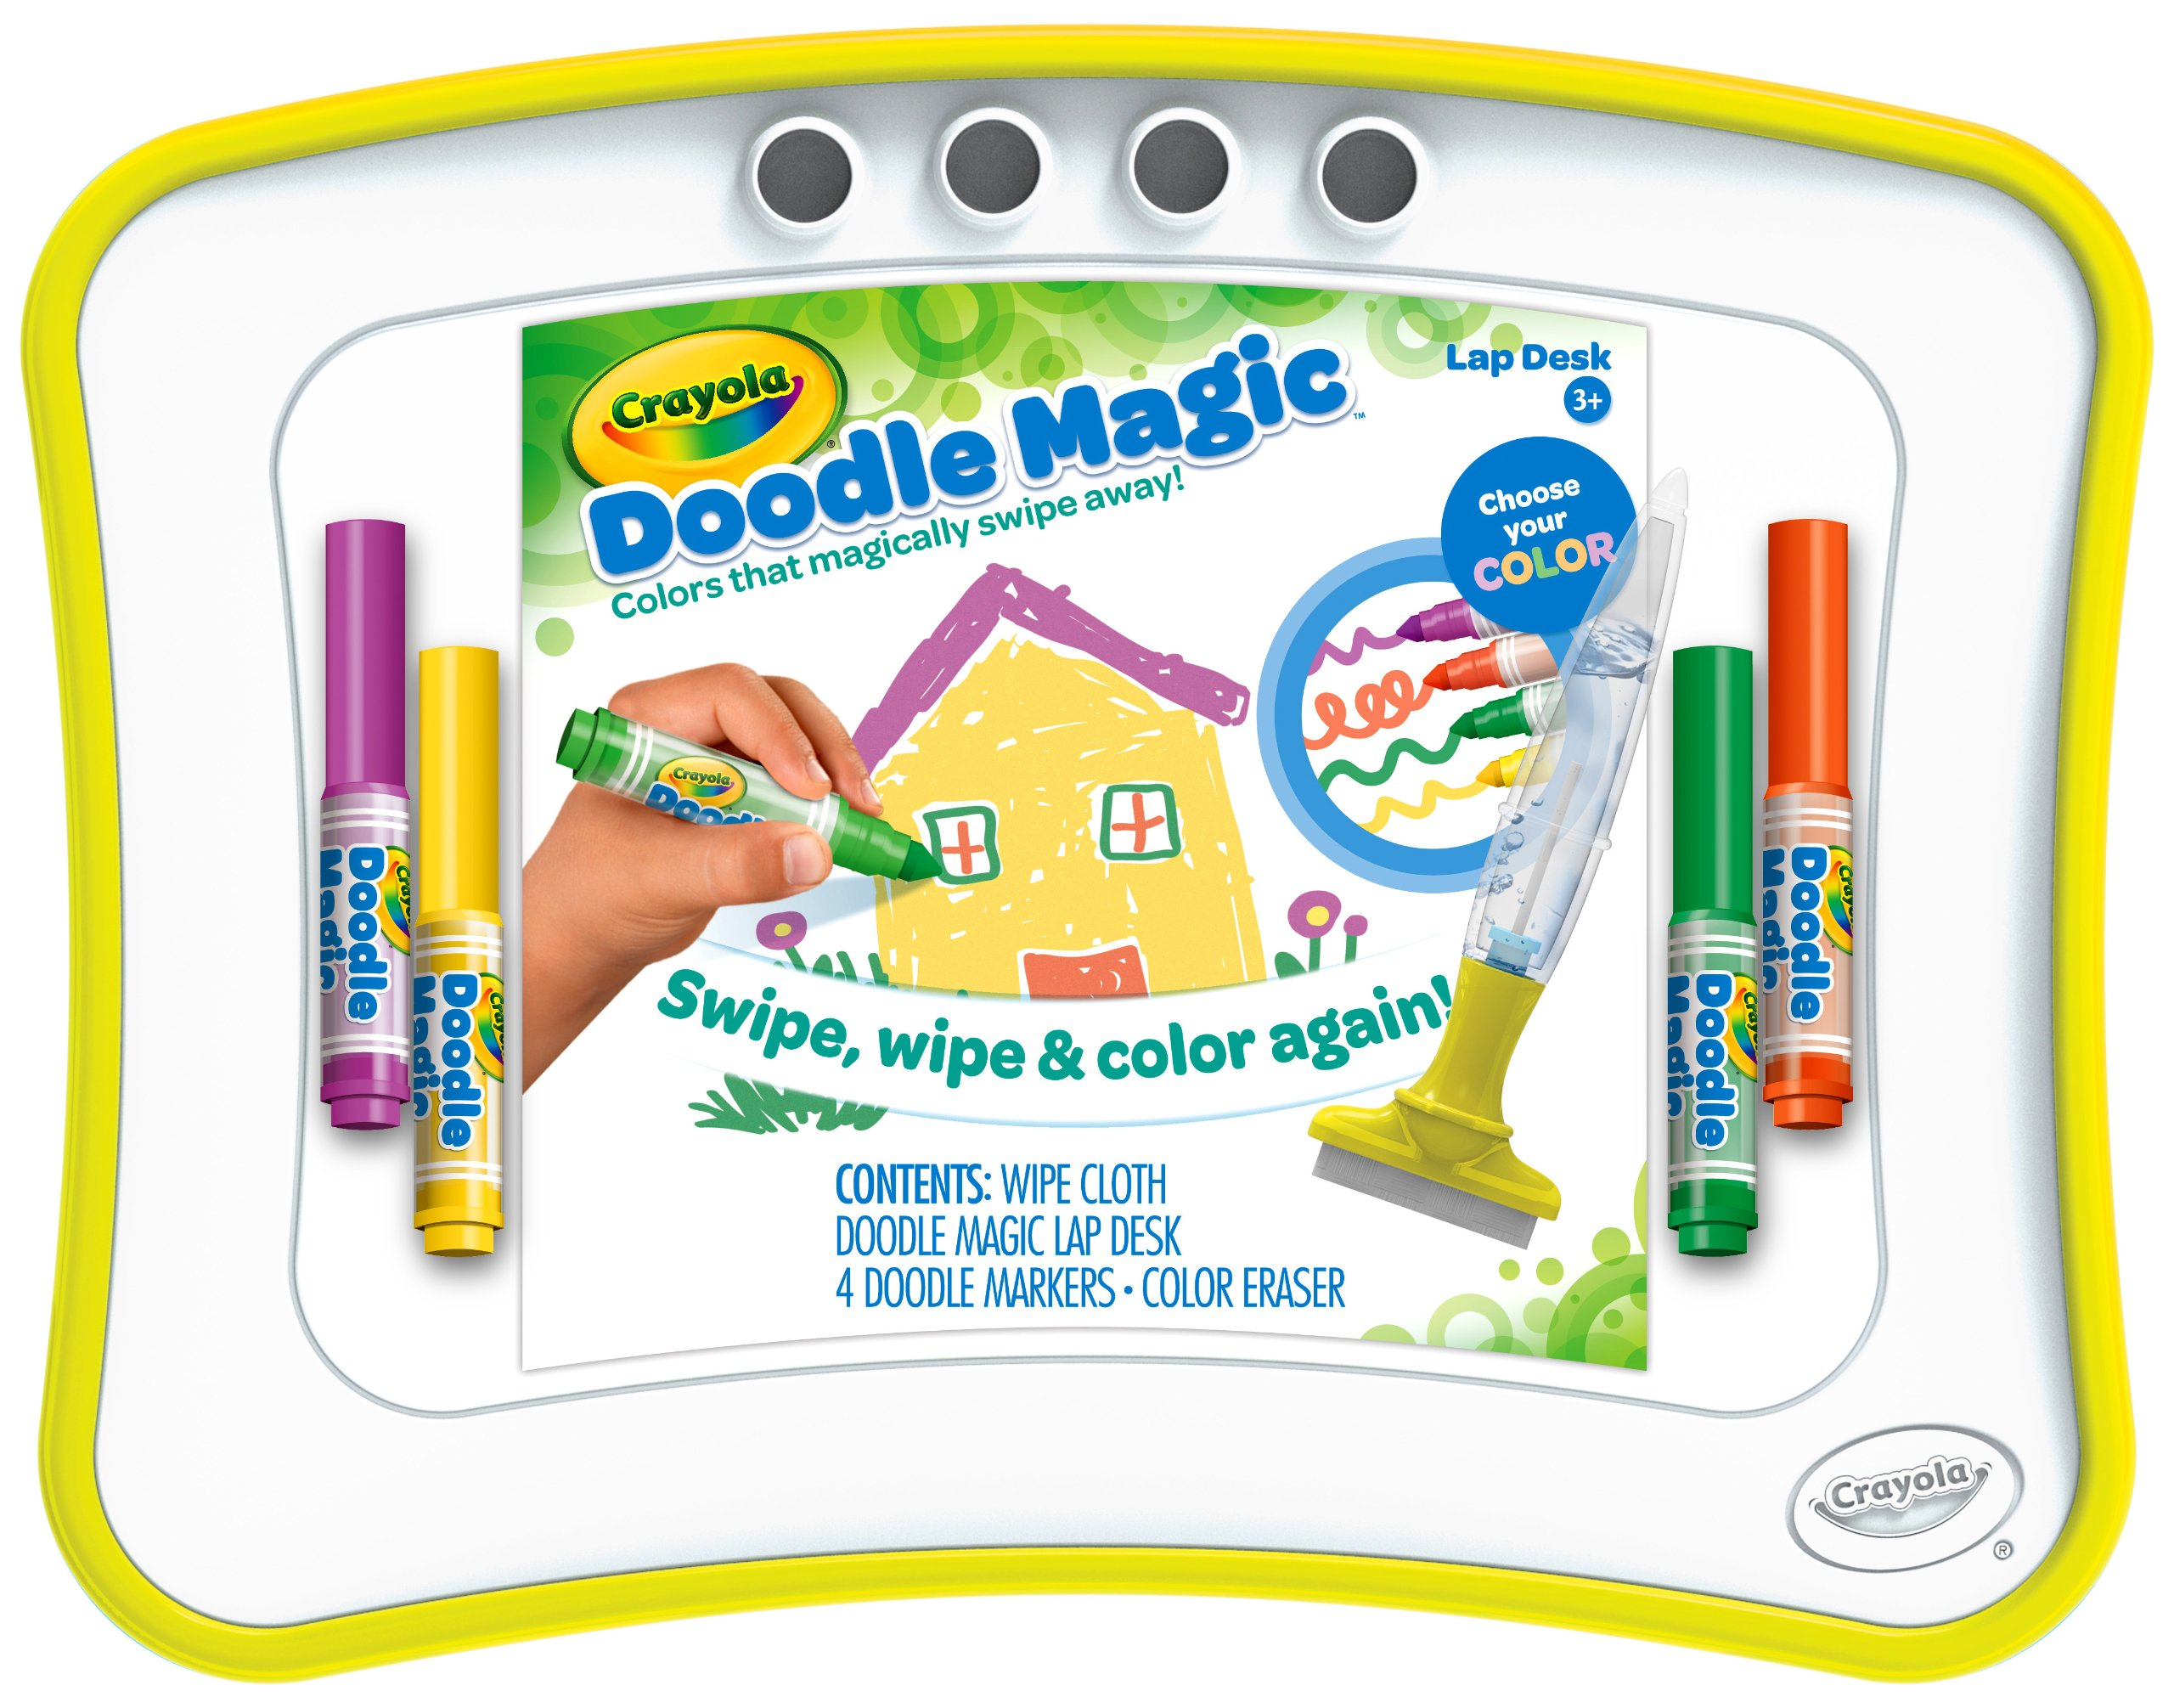 Crayola Doodle Magic Lap Desk